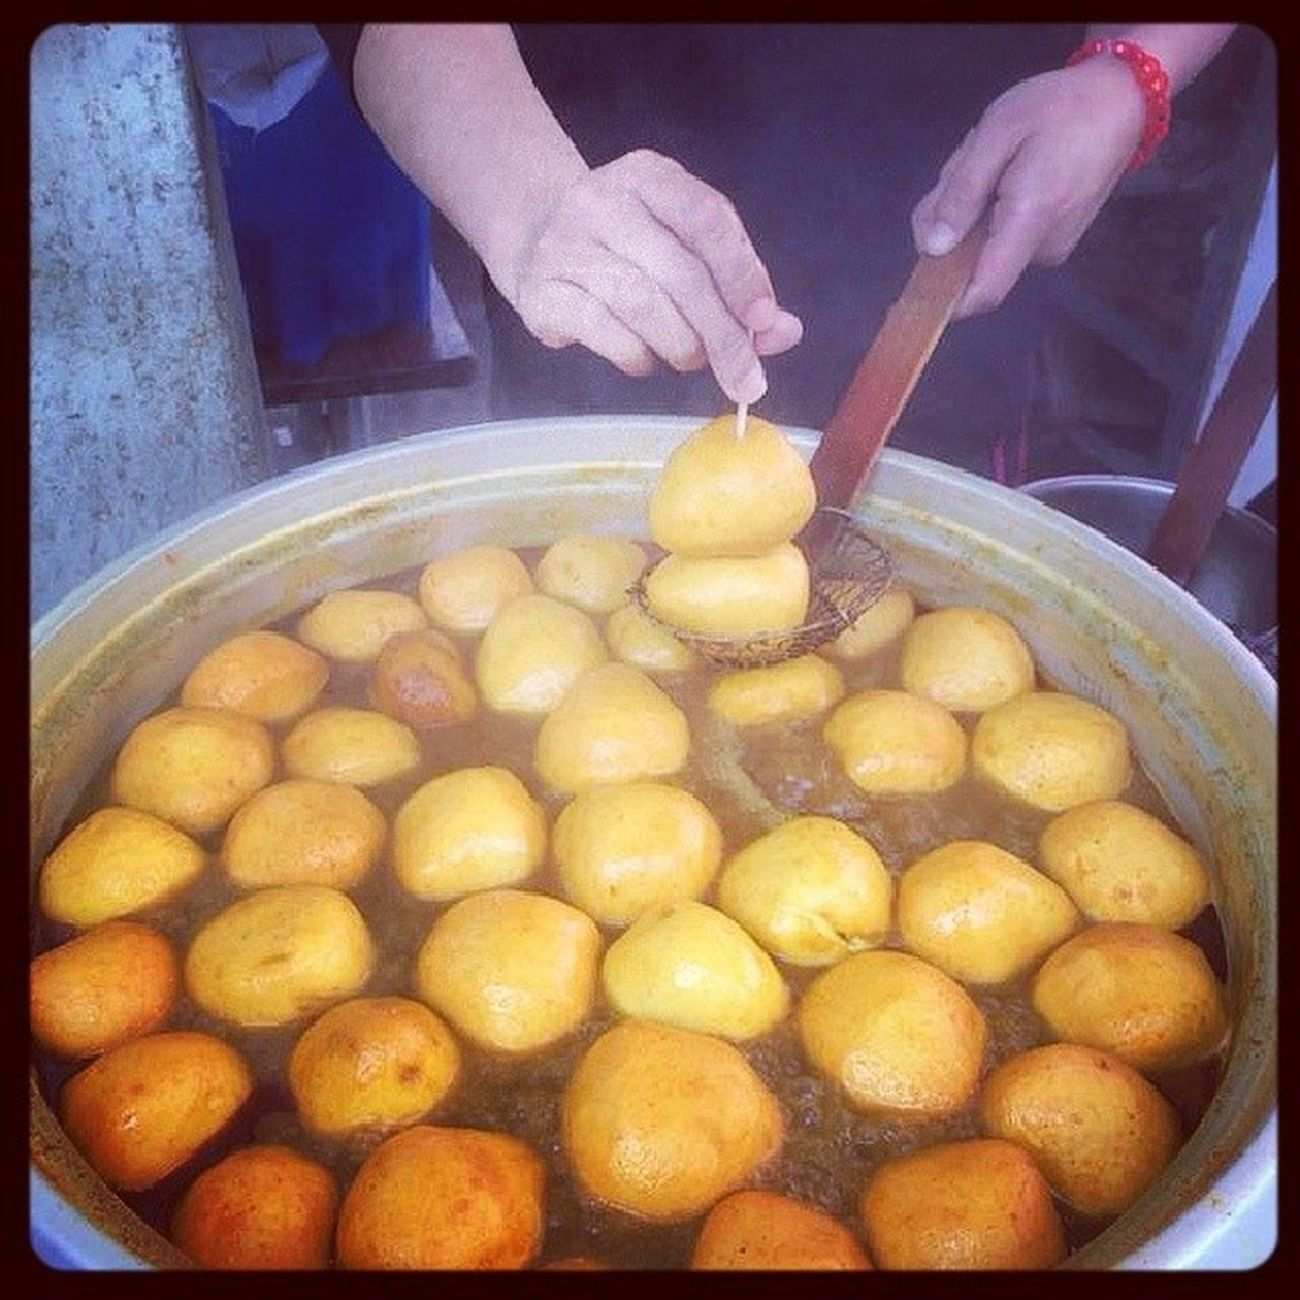 識食嘅,一定去大澳食頭咁大嘅魚蛋! Fishball Yummy Tai_O